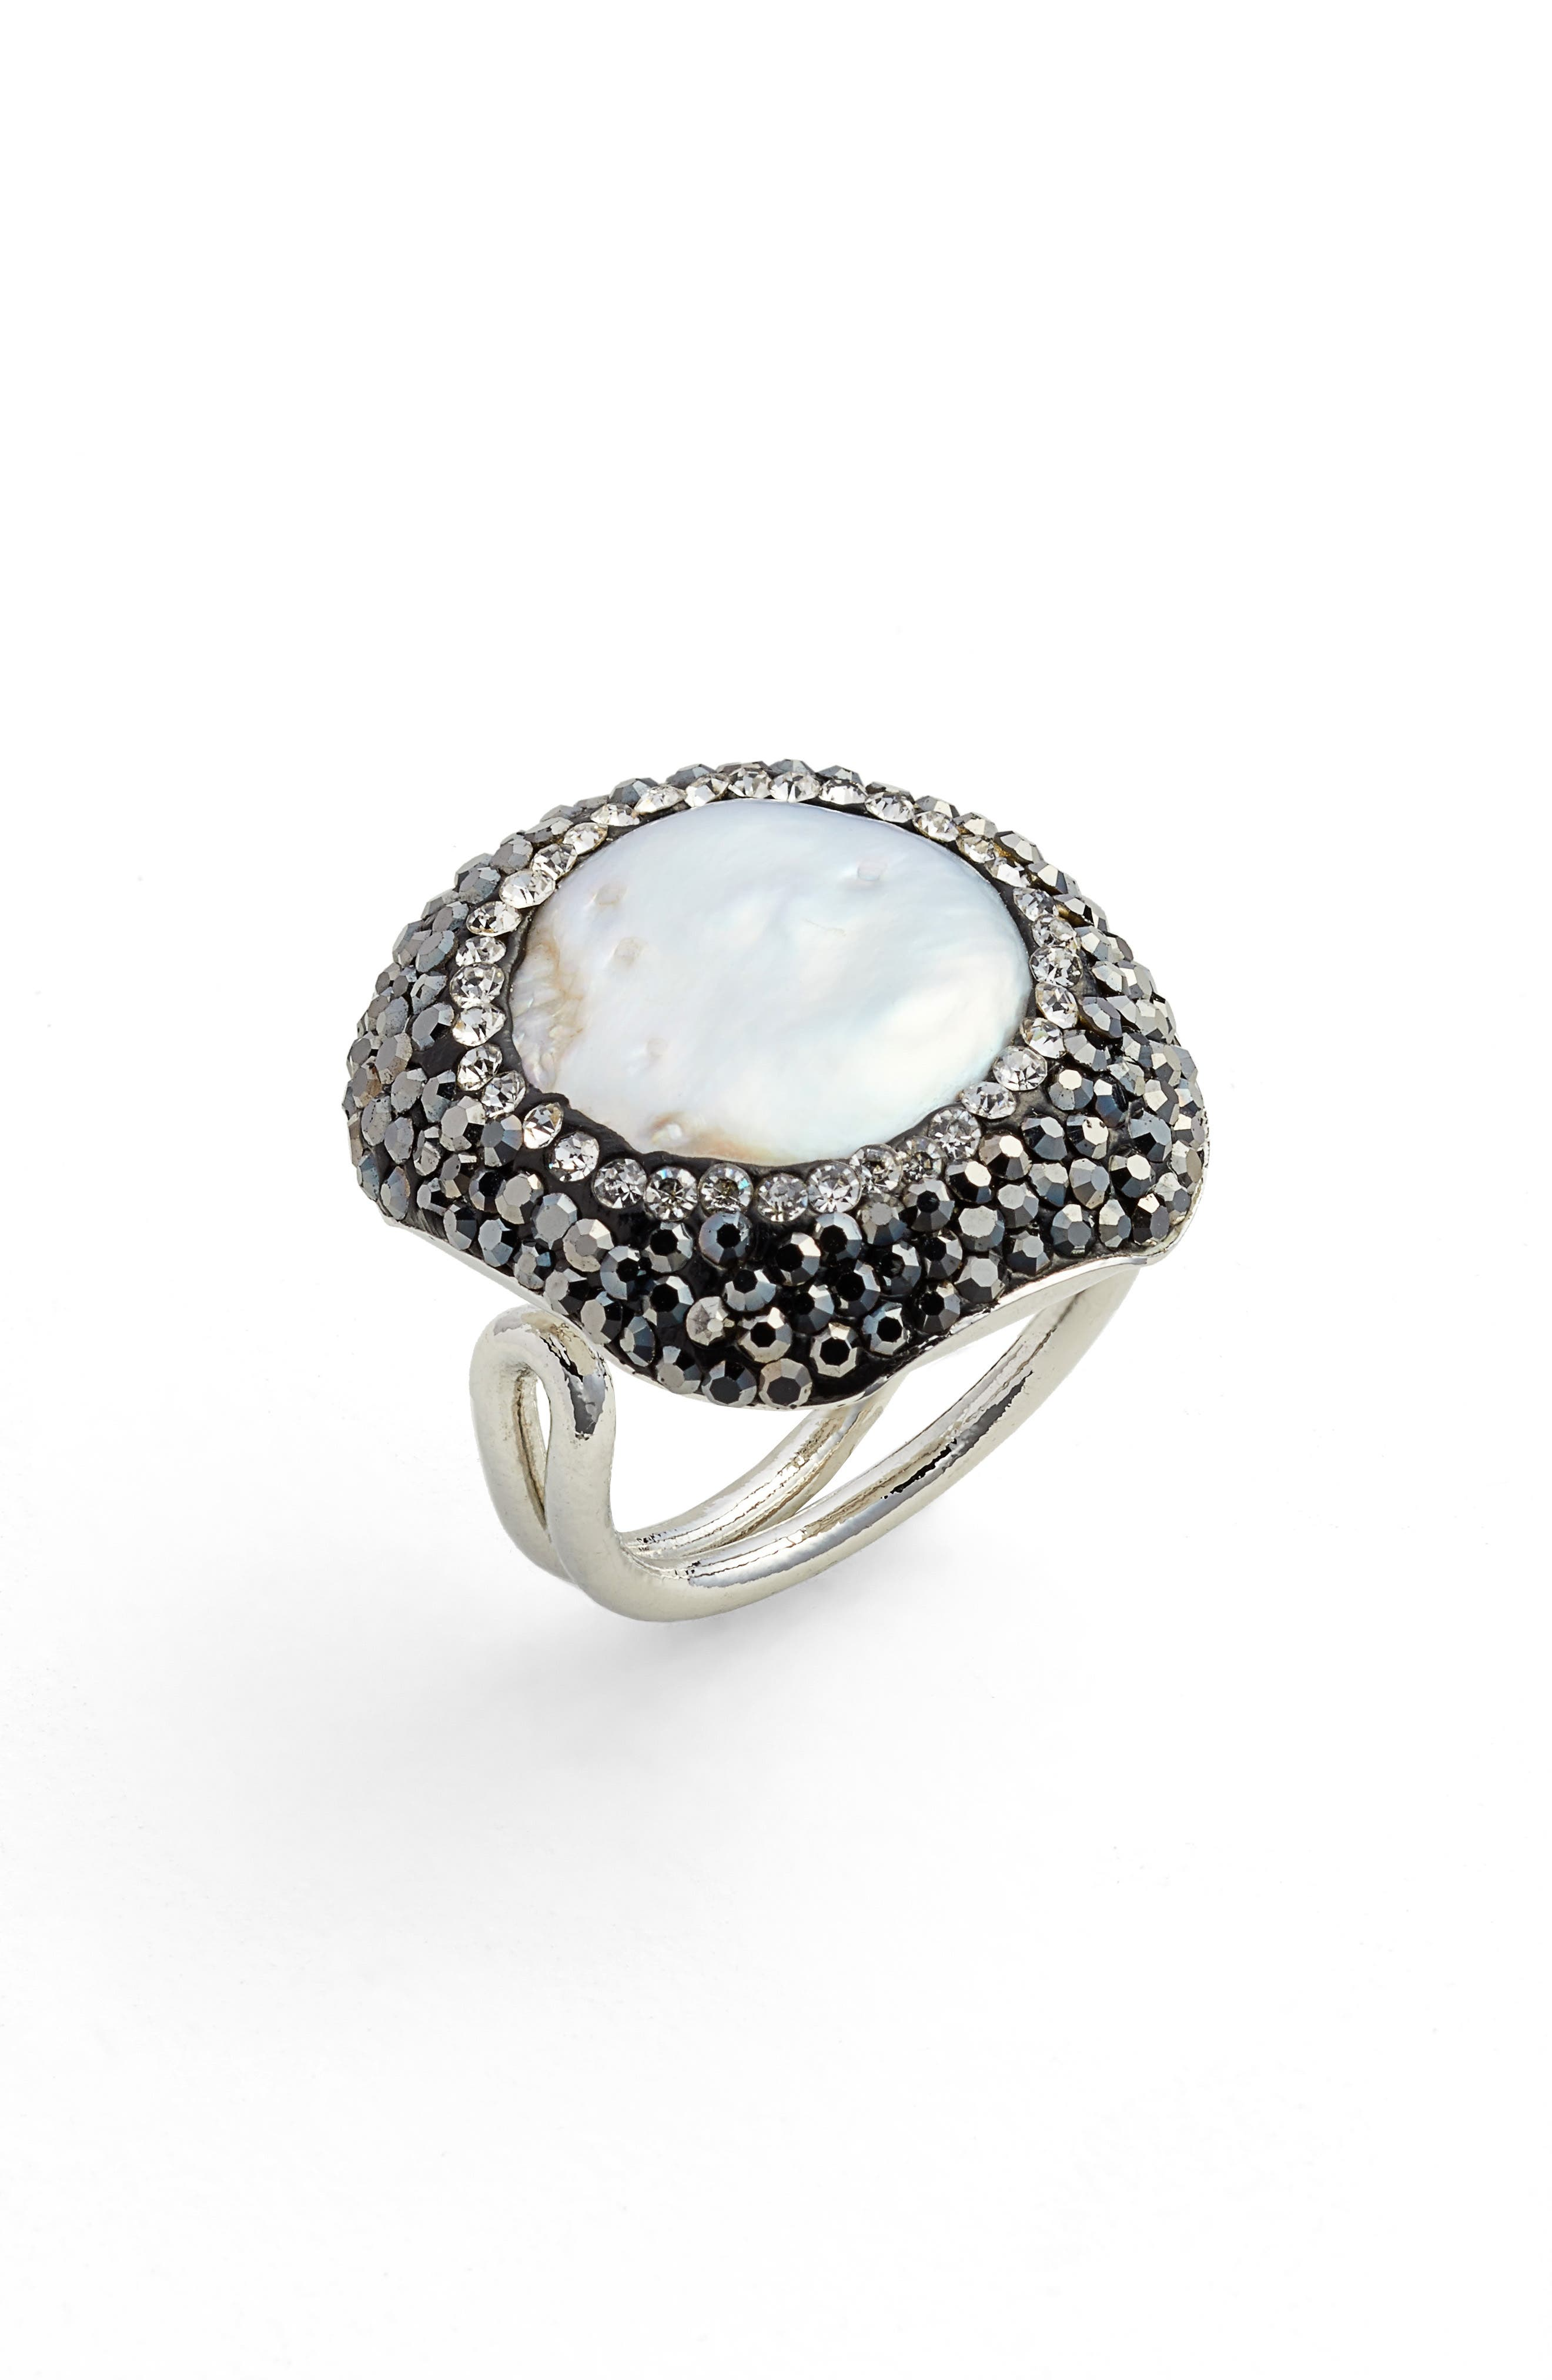 Clarinet Mother-of-Pearl & Crystal Adjustable Ring,                             Main thumbnail 1, color,                             900